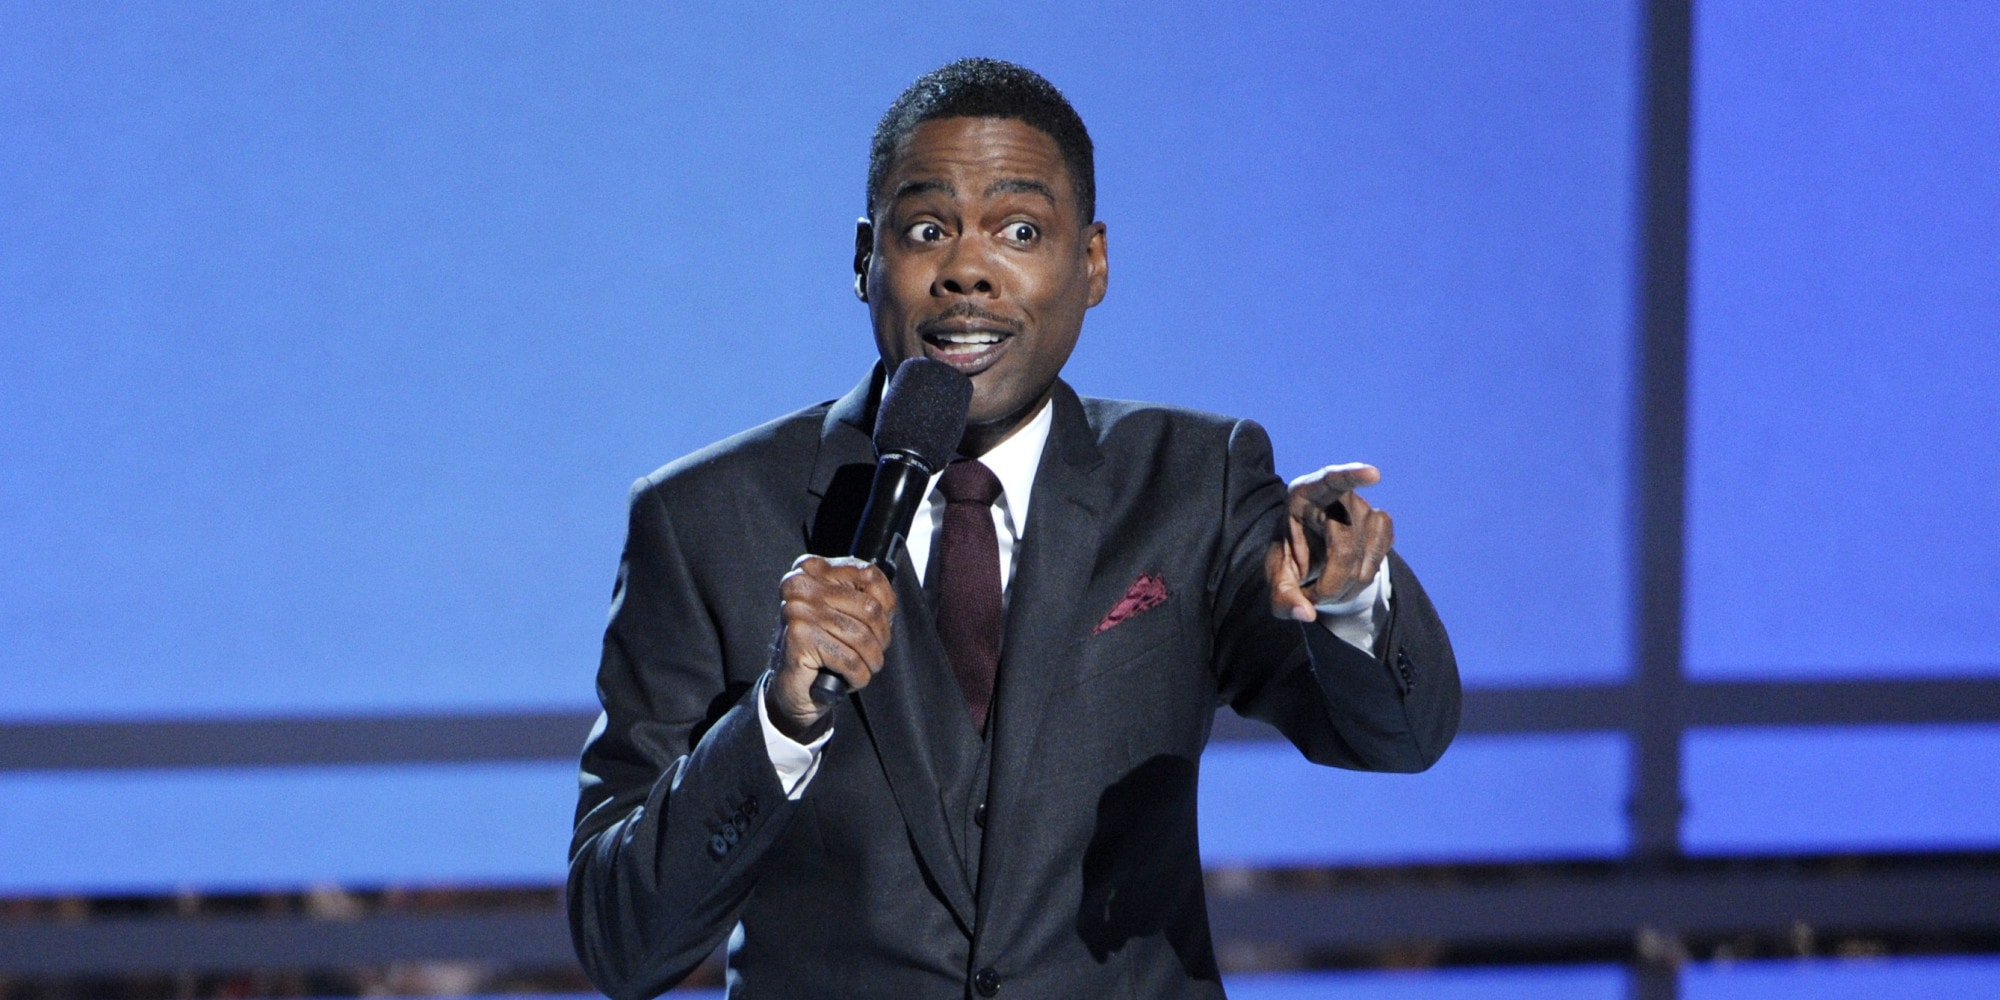 Chris Rock Widescreen for desktop